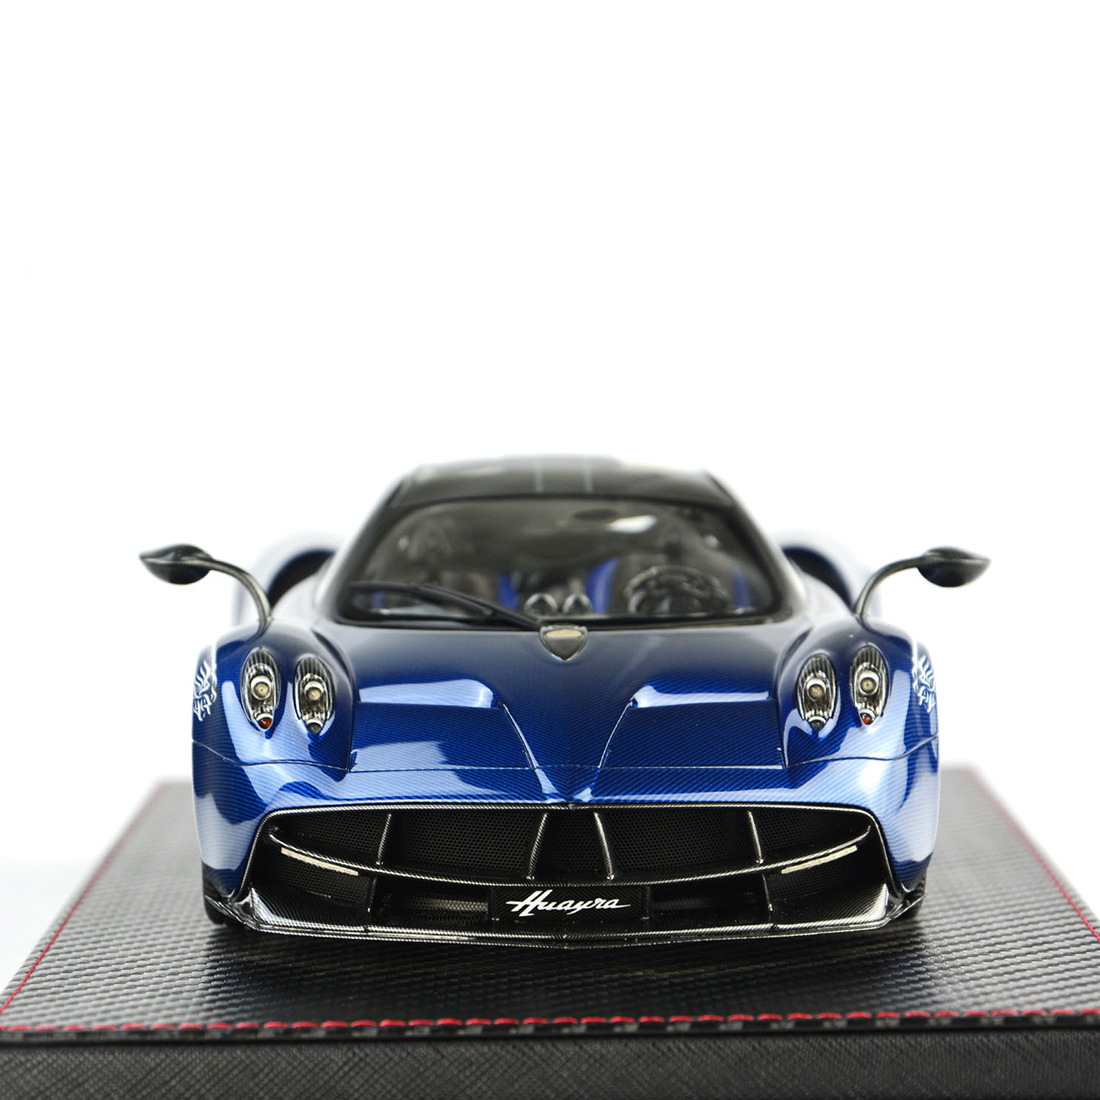 1:18 Car Model Pagani HUAYRA Model Collection Decor With Base Dust Cover Model Educational Toy Blue/Charcoal Grey/Purple Red